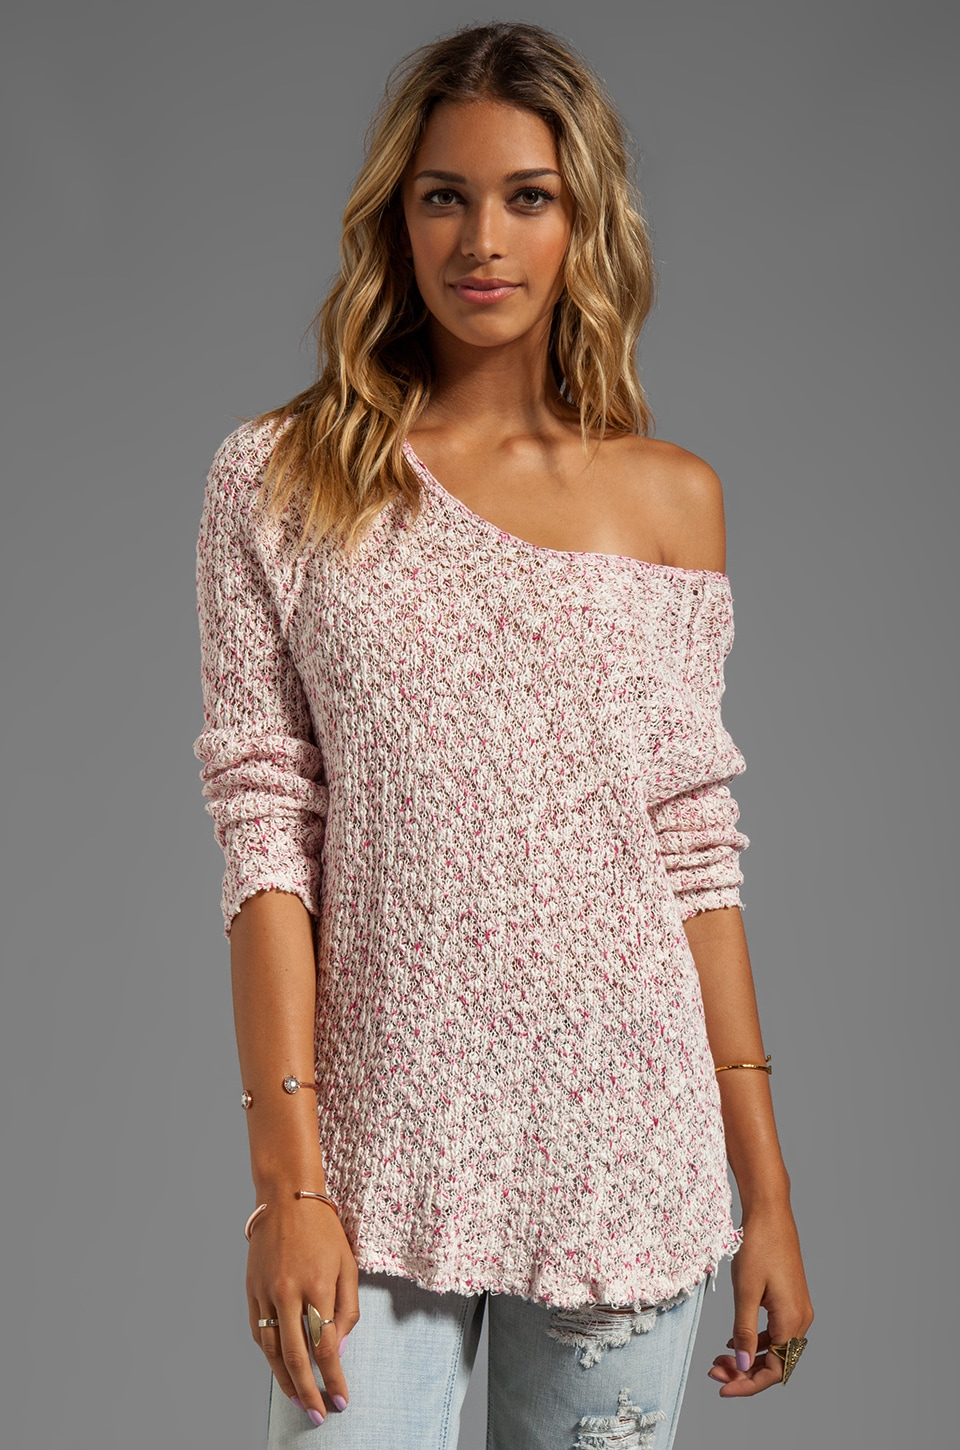 Free People Poppyseed Pullover in Ivory/Pink Combo